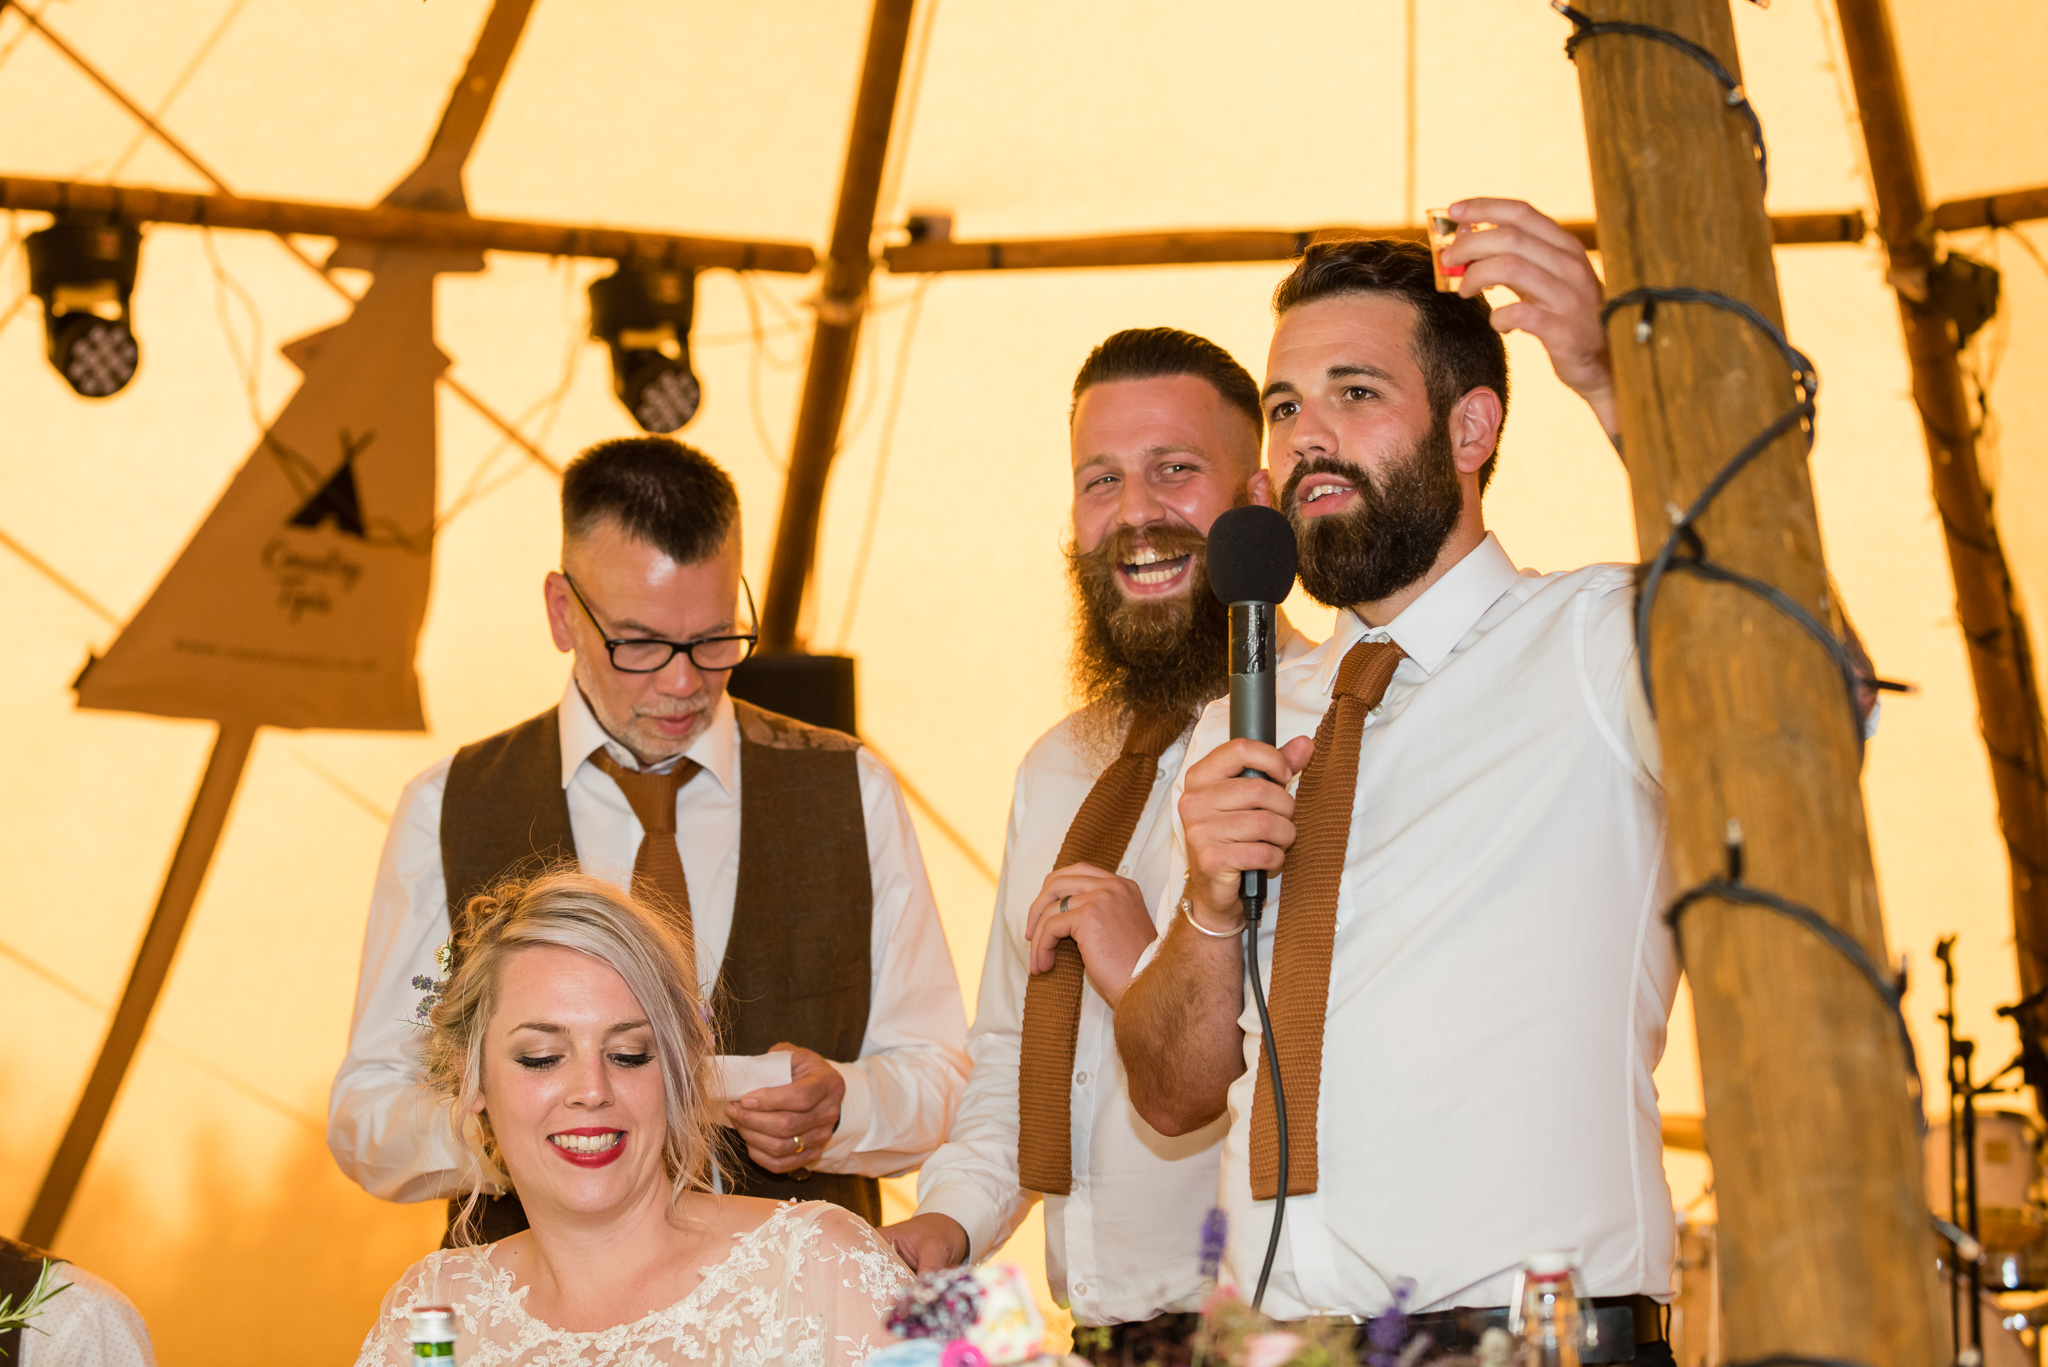 The Brides Brothers give a joint speech